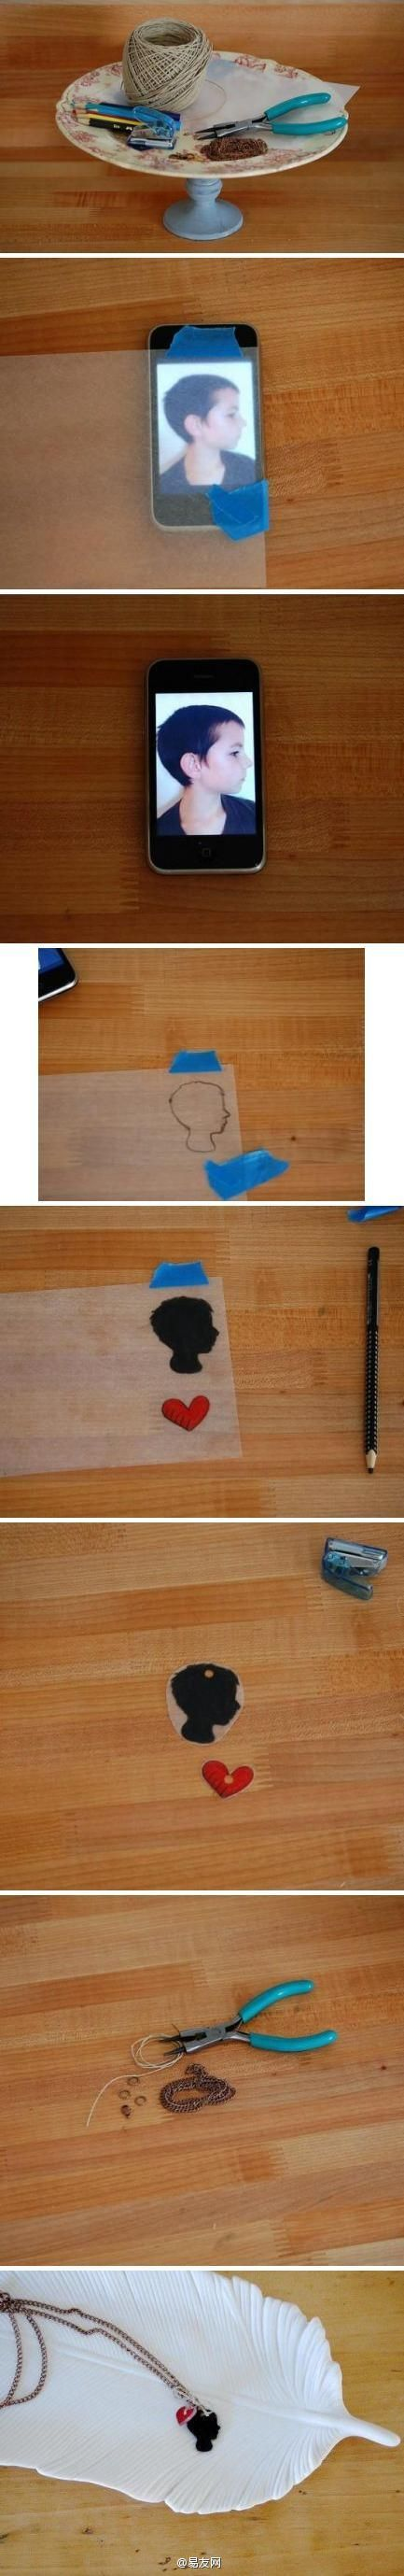 Neat shrinky dink craft. #diy #crafts #doityourself